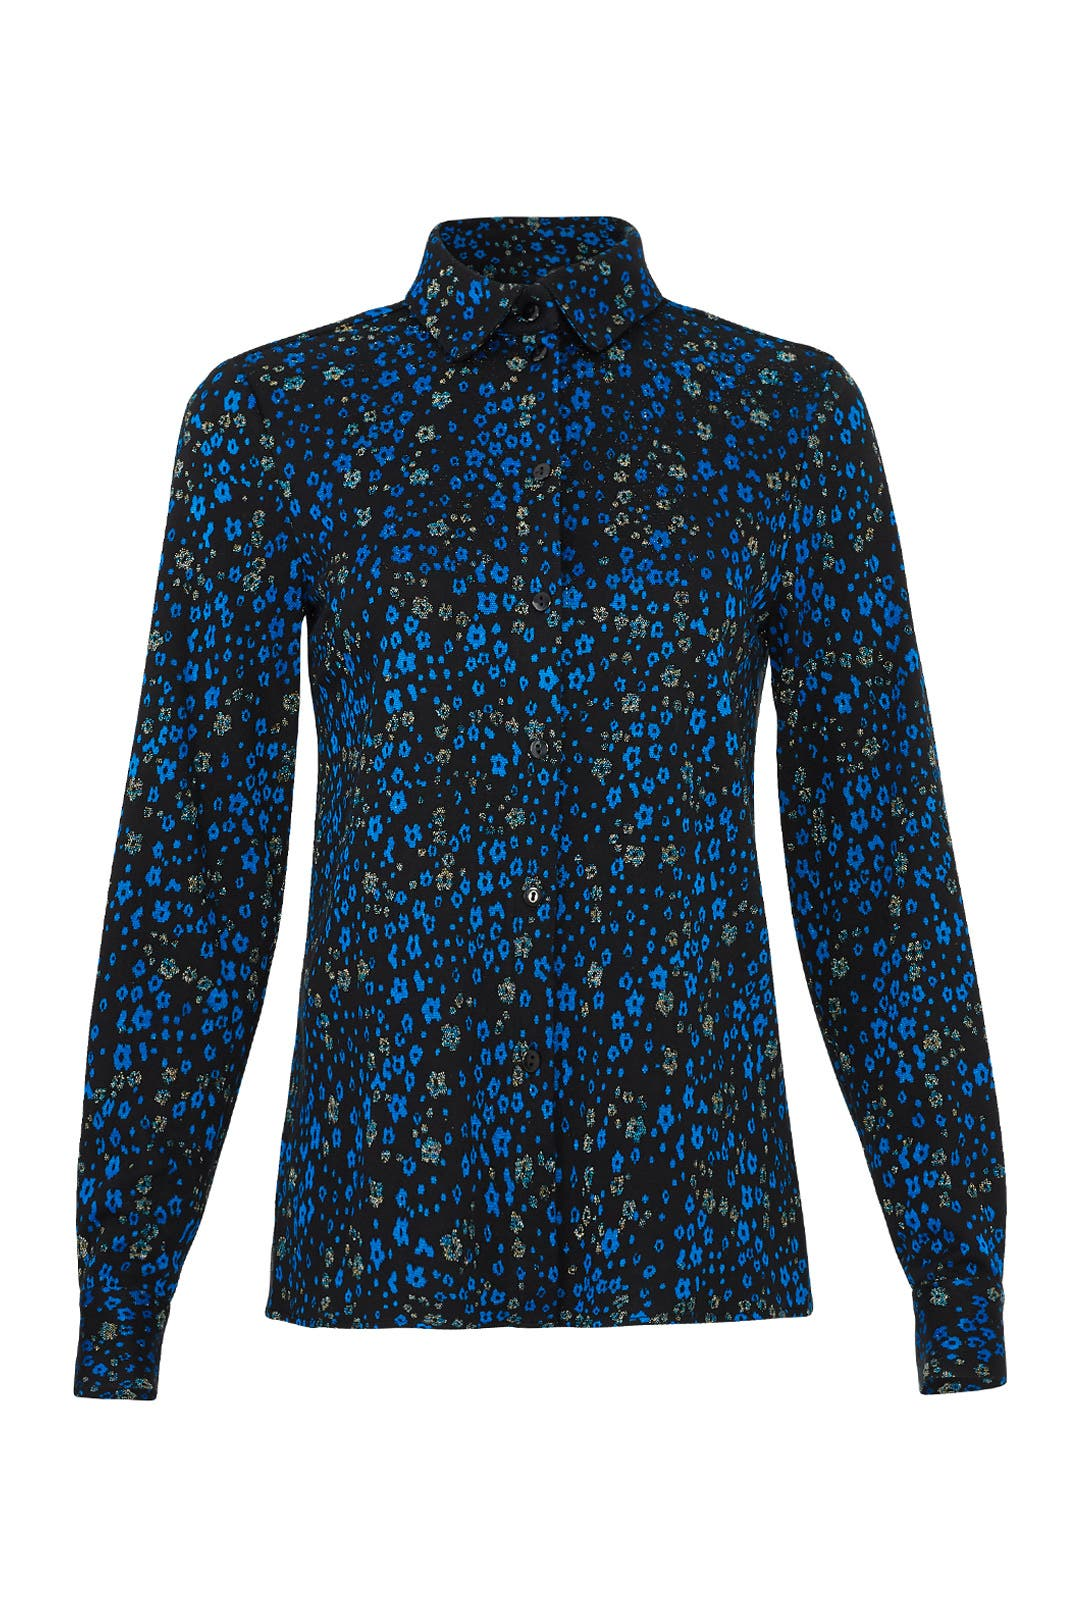 d7f7c6d862a Floral Lucian Top by STINE GOYA for $40 | Rent the Runway